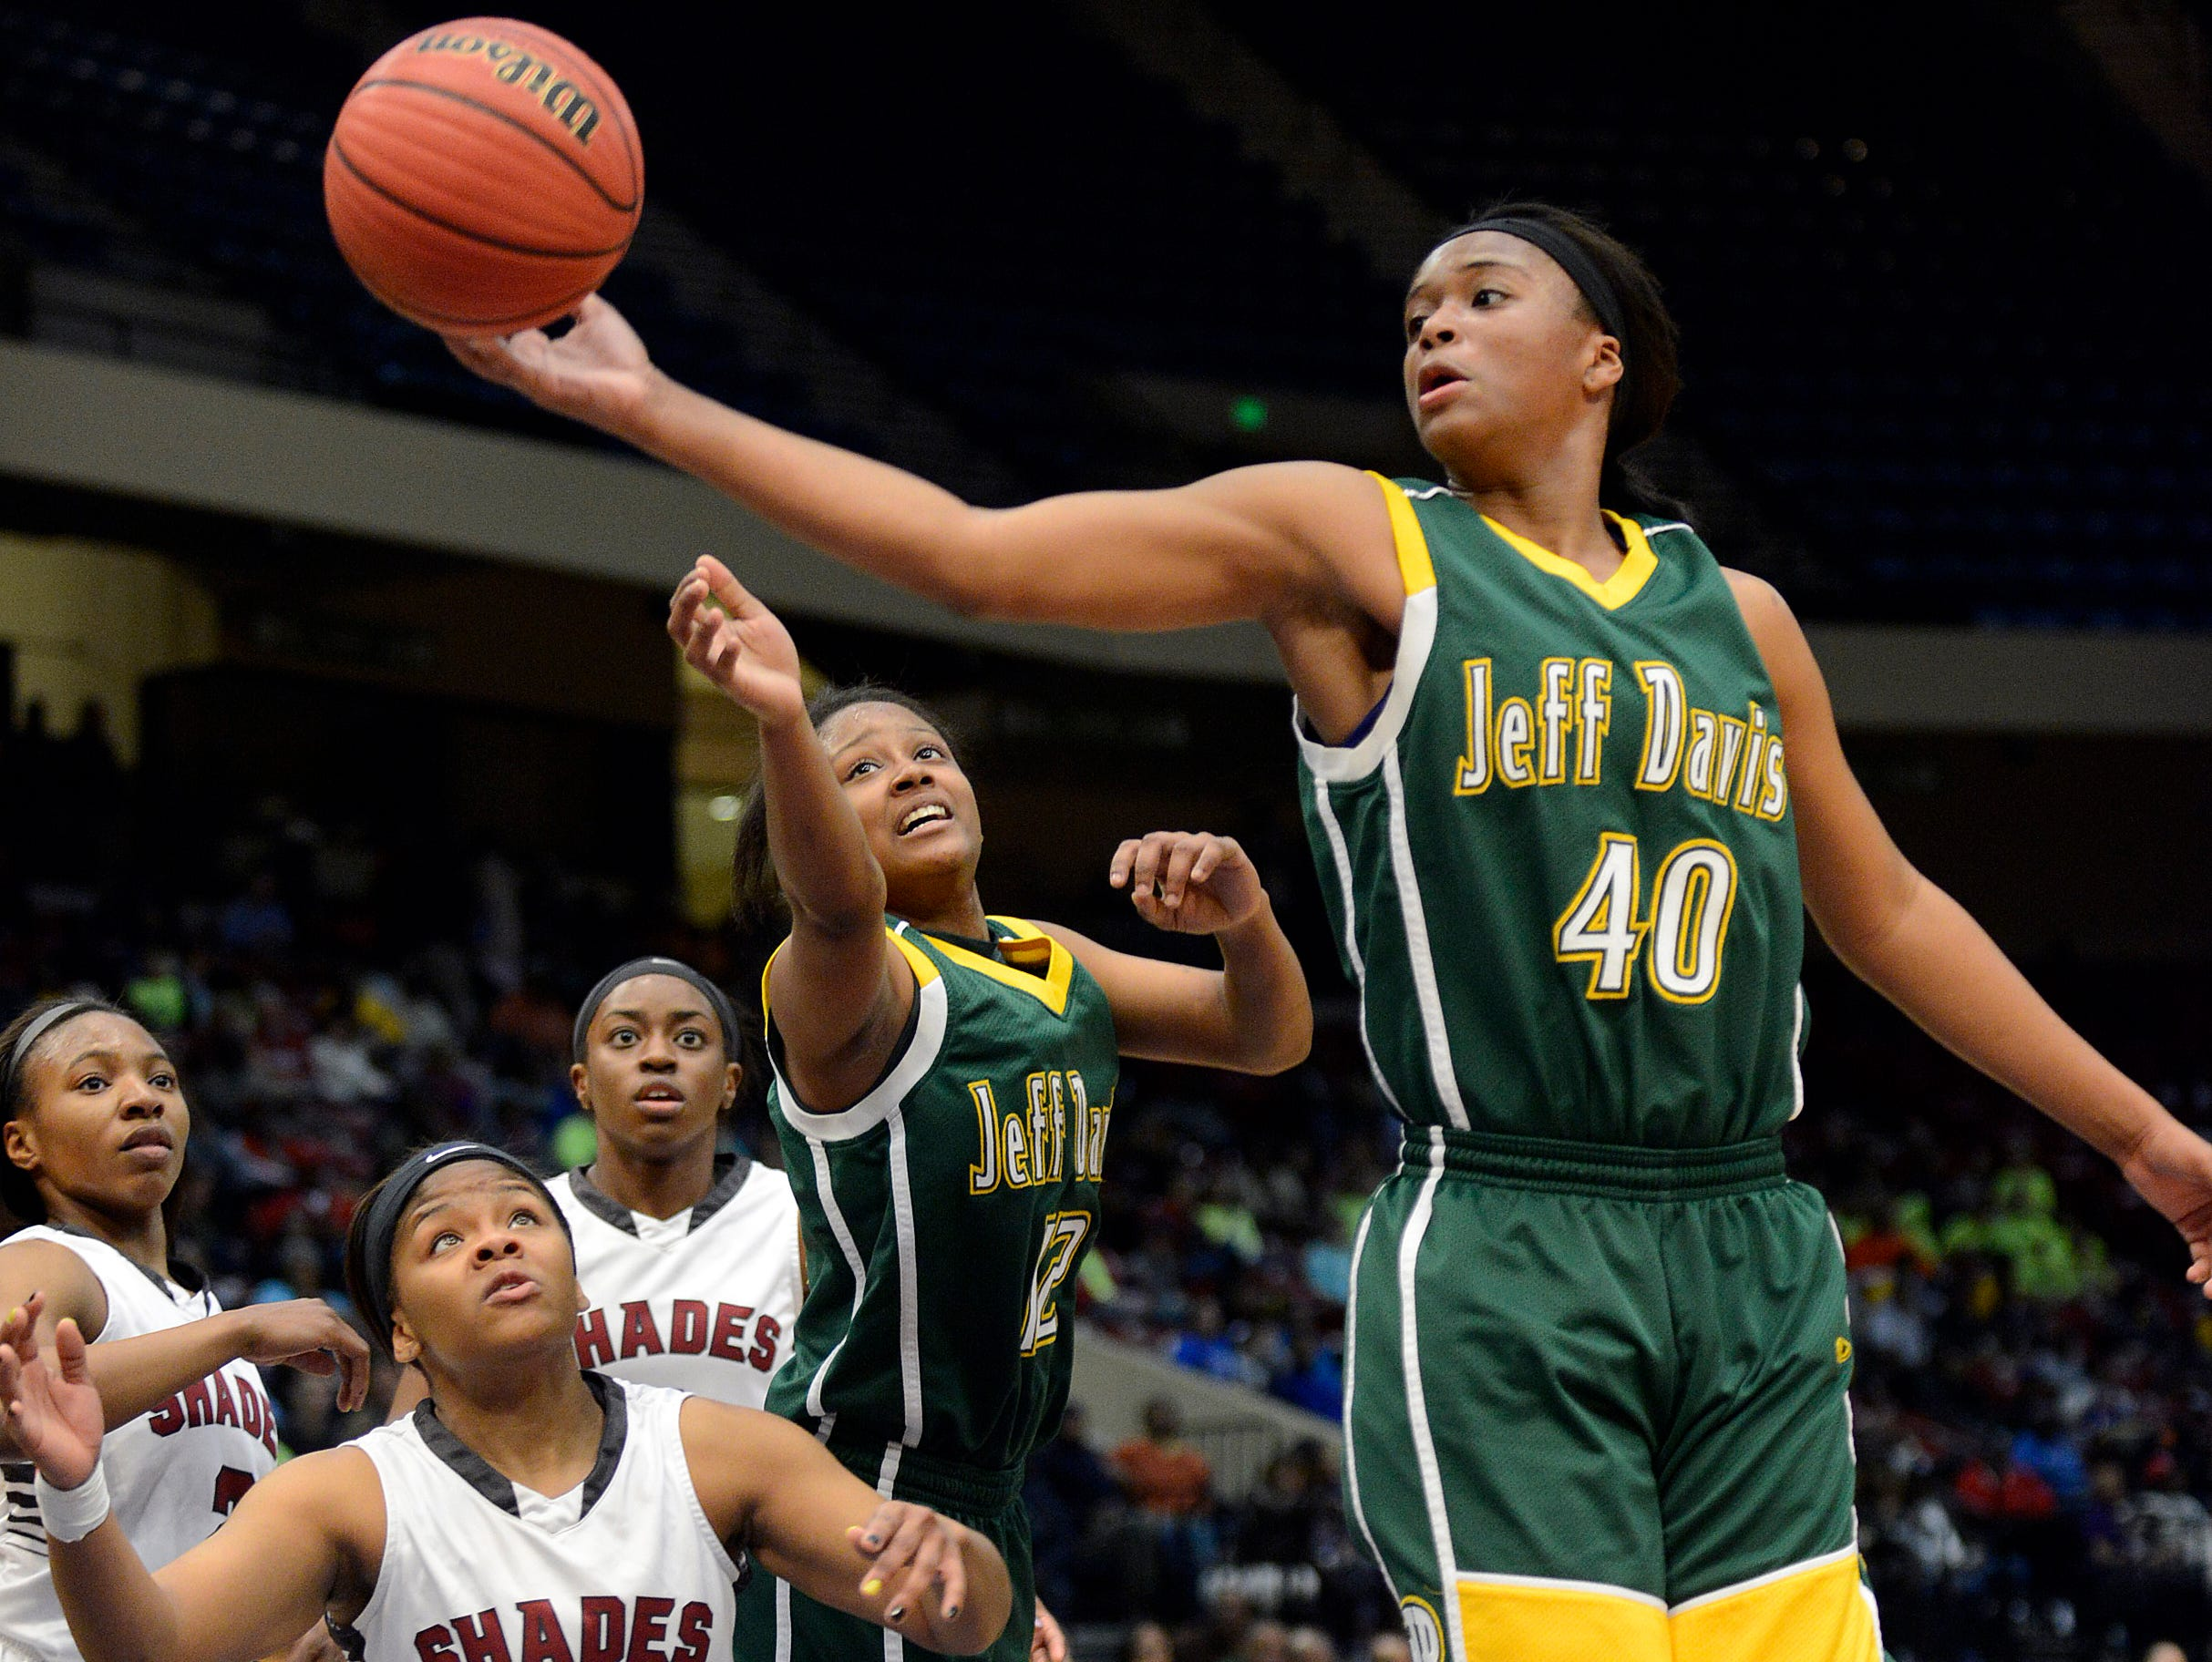 Jeff Davis' Jasmine Walker grabs the rebound during the AHSAA Final 48 semi-final 6A game at the BJCC in Birmingham, Ala., on Wednesday, Feb. 26, 2014. (Montgomery Advertiser, Amanda Sowards)